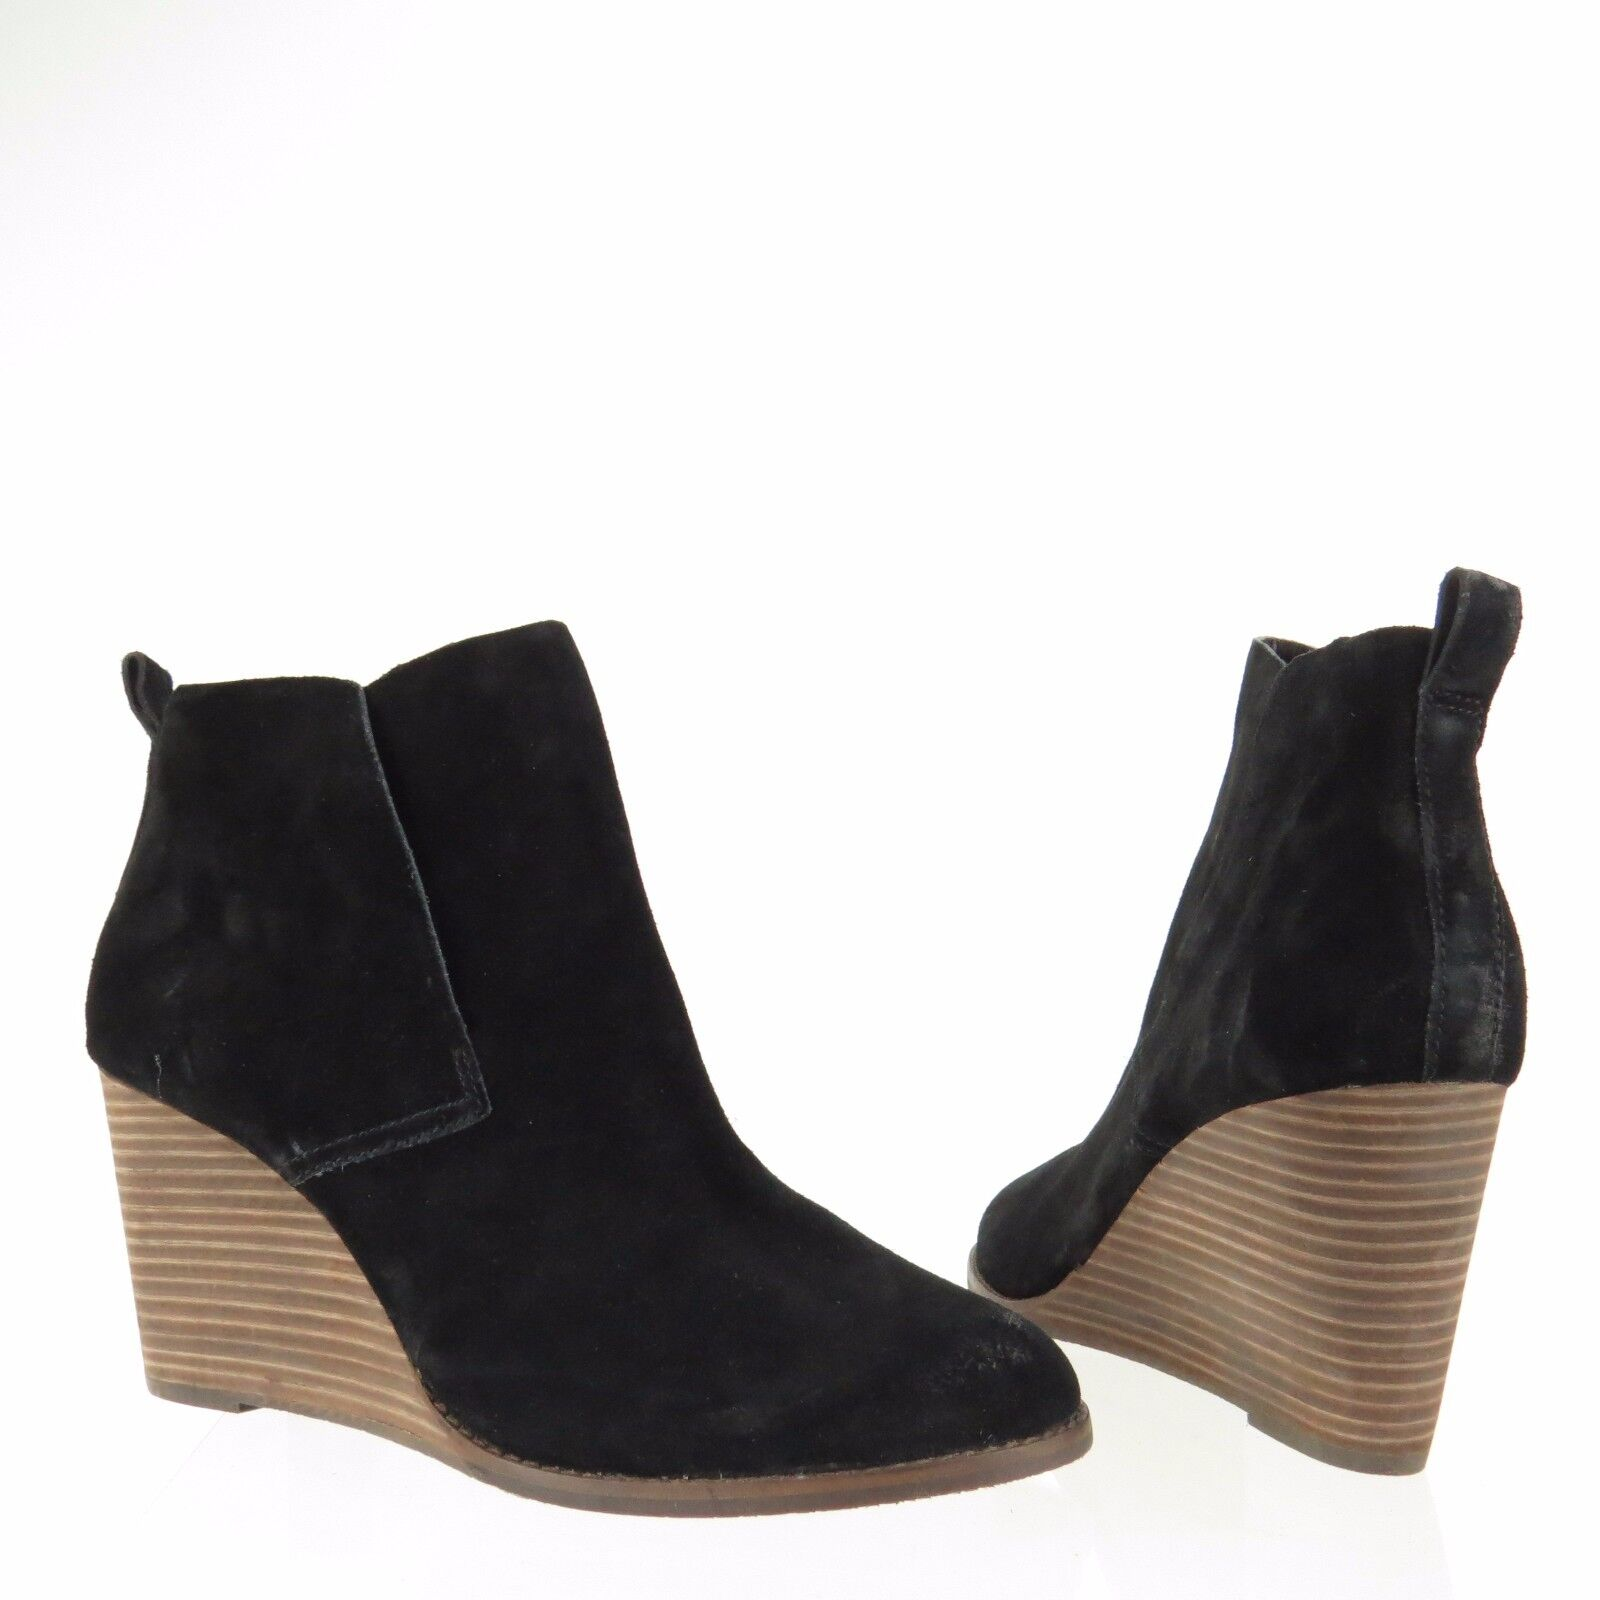 Women's Lucky Brand Yoniana shoes Black Suede Ankle Wedge Booties Booties Booties Size 12 M NEW 3d951b